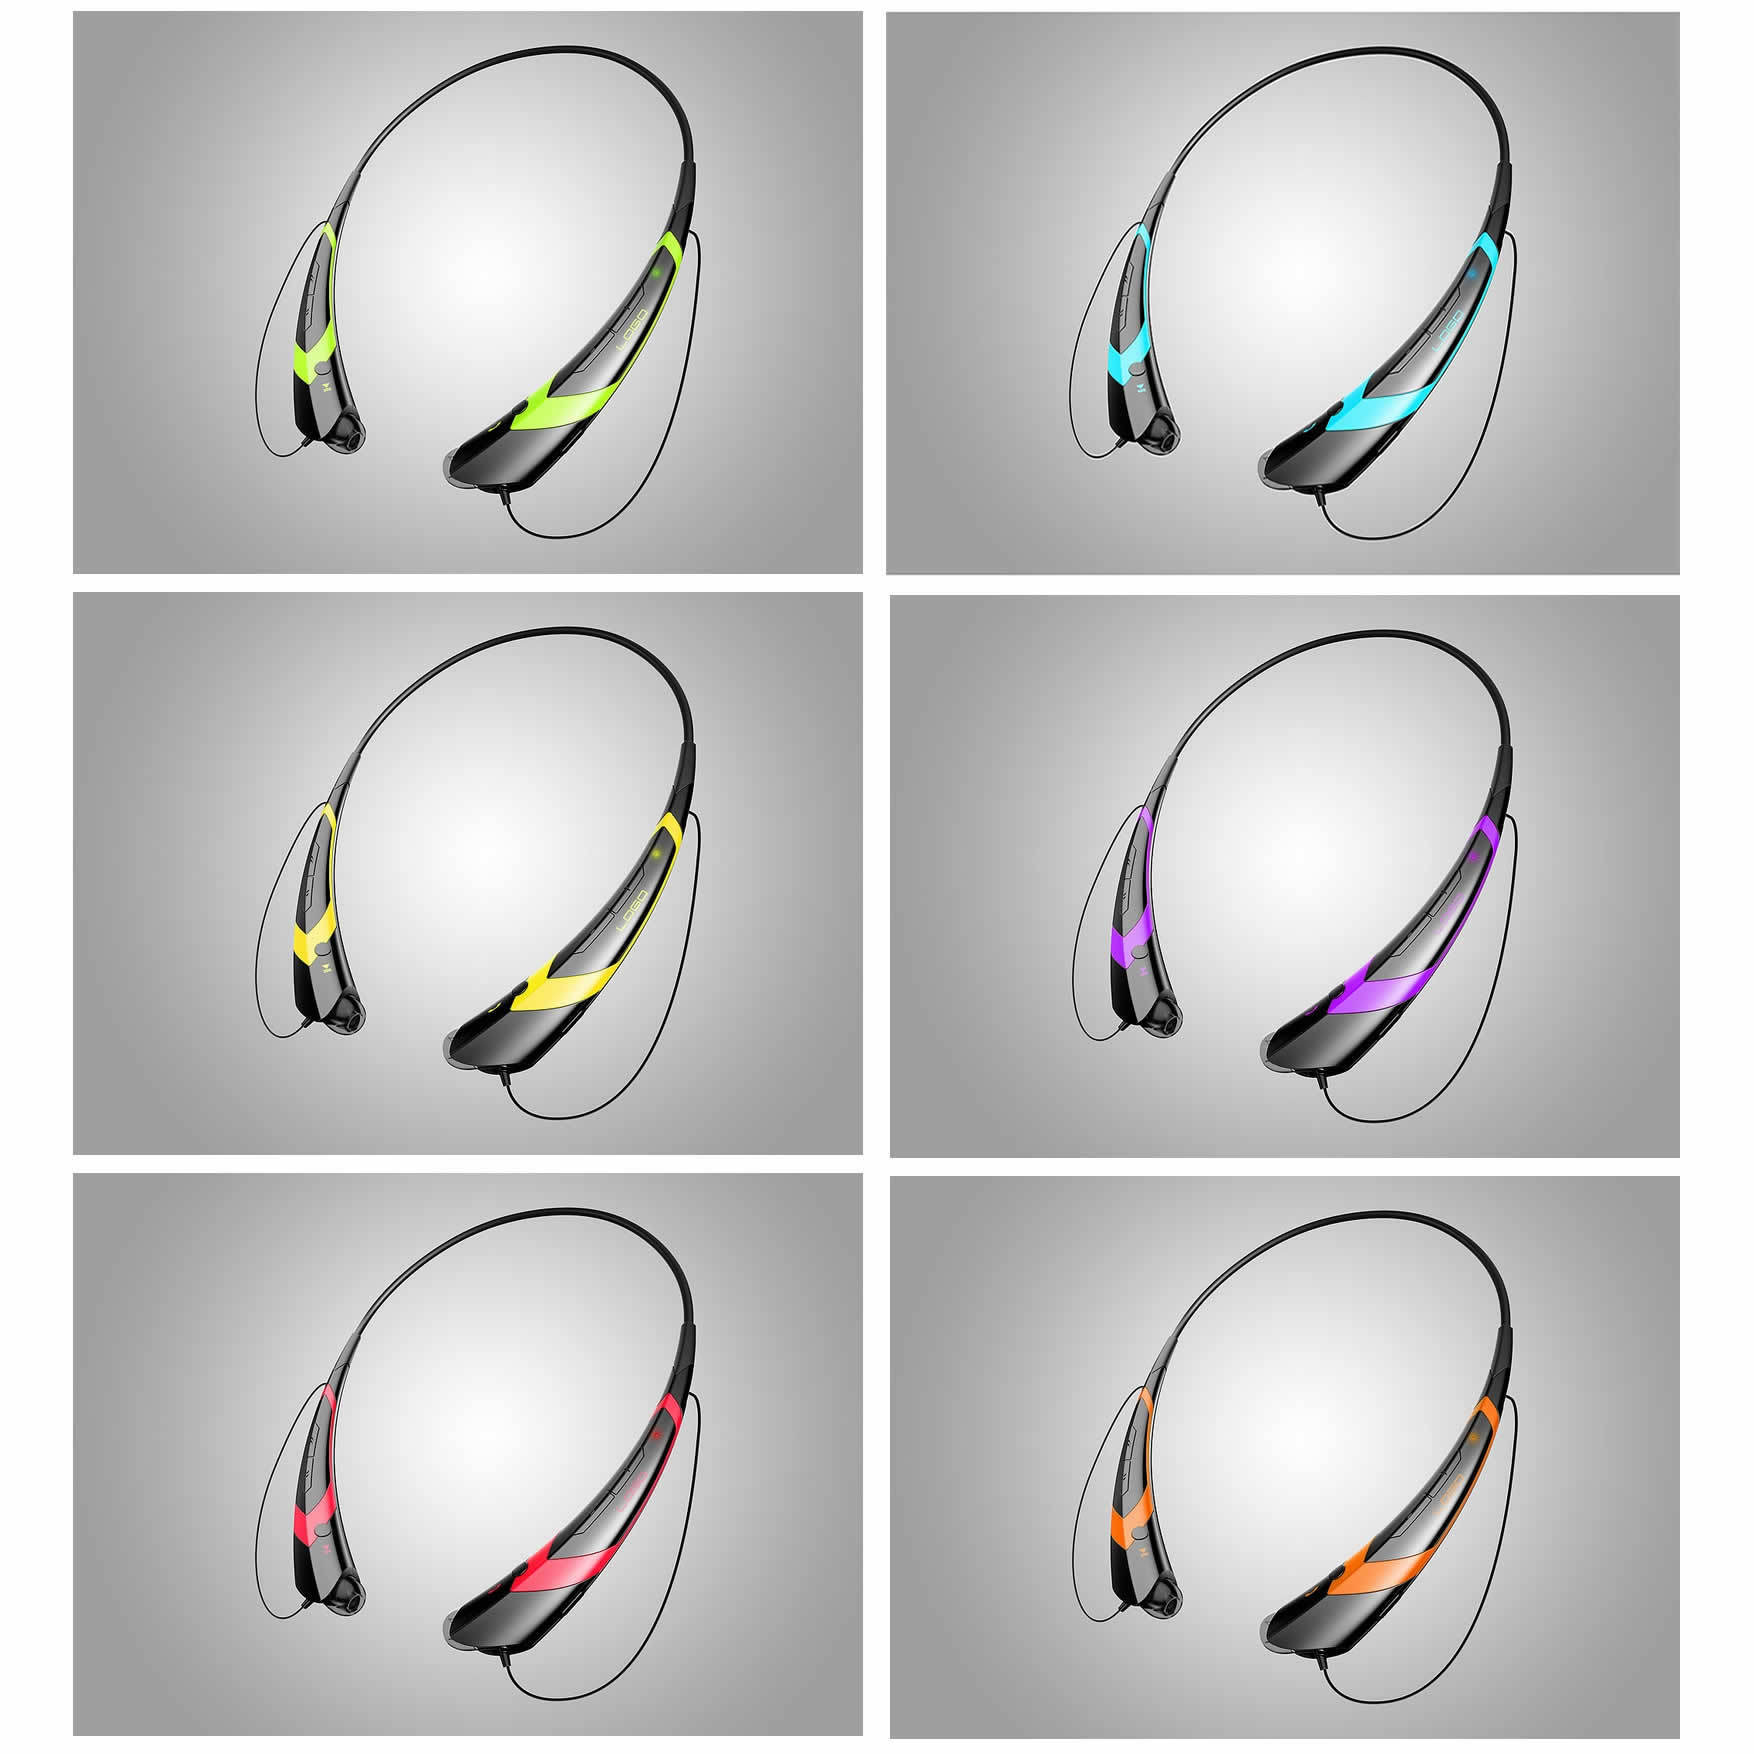 Music & Sound Collar headphones with Magnetic Ear Buds 549ddf214f3d6ff139000269